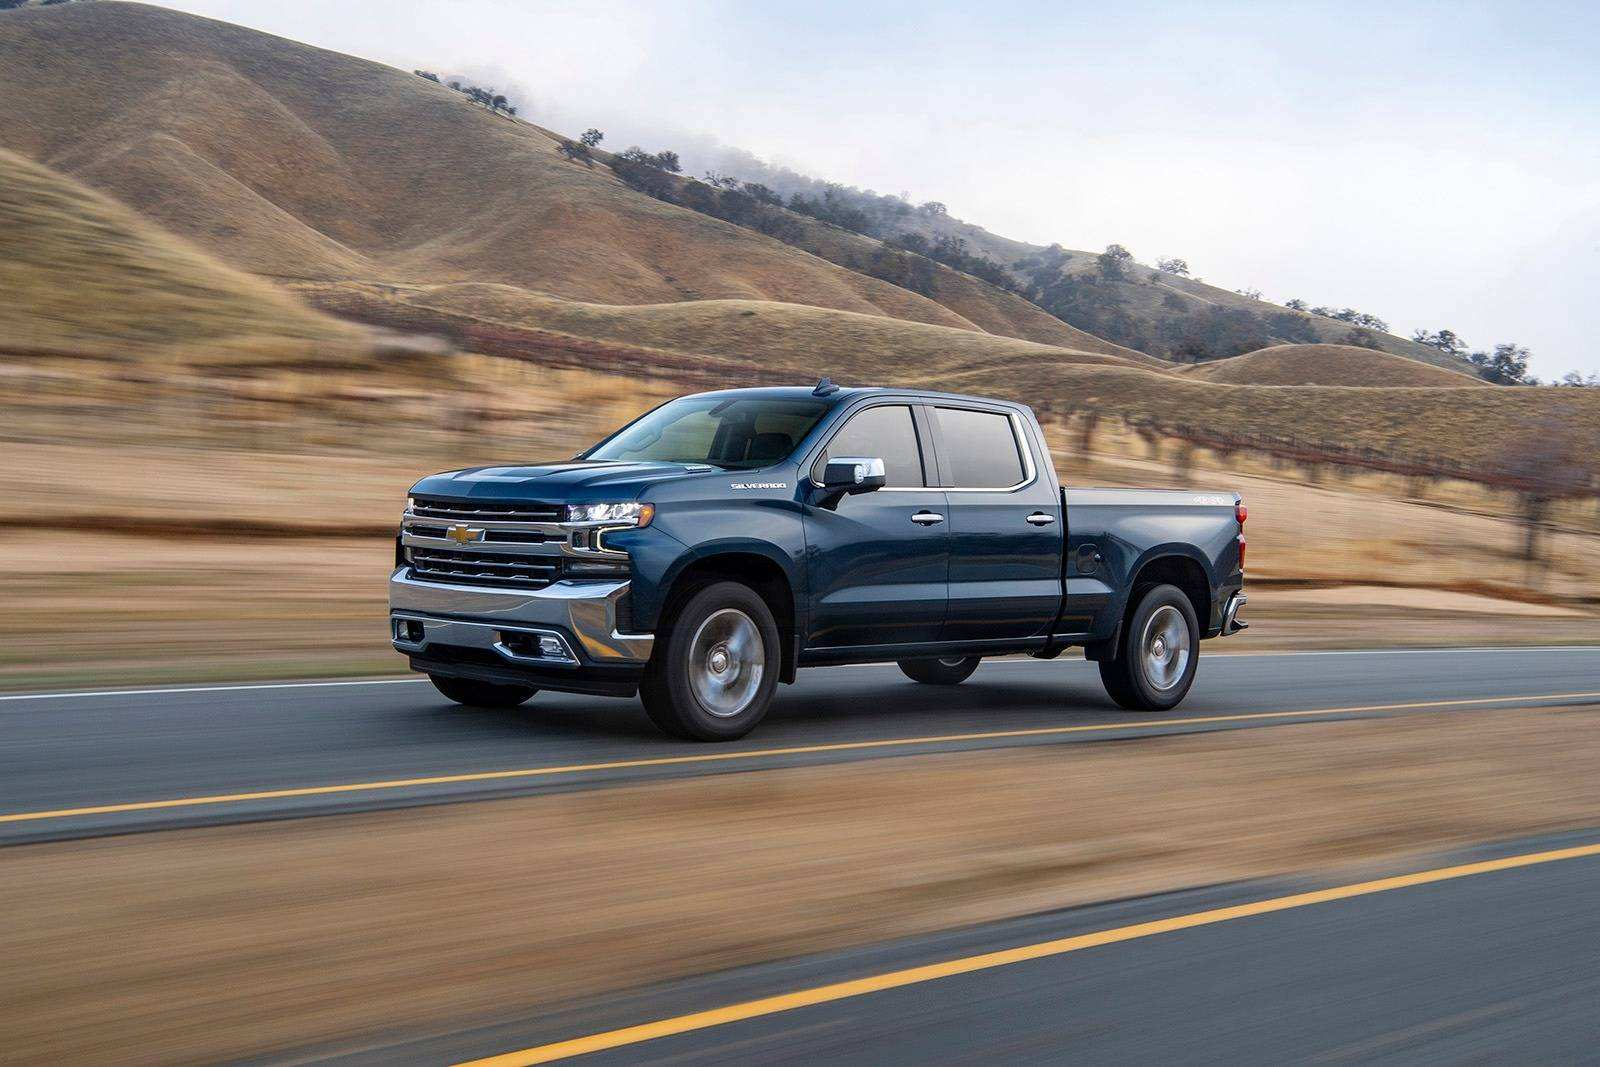 39 New 2020 Silverado 1500 Redesign And Concept